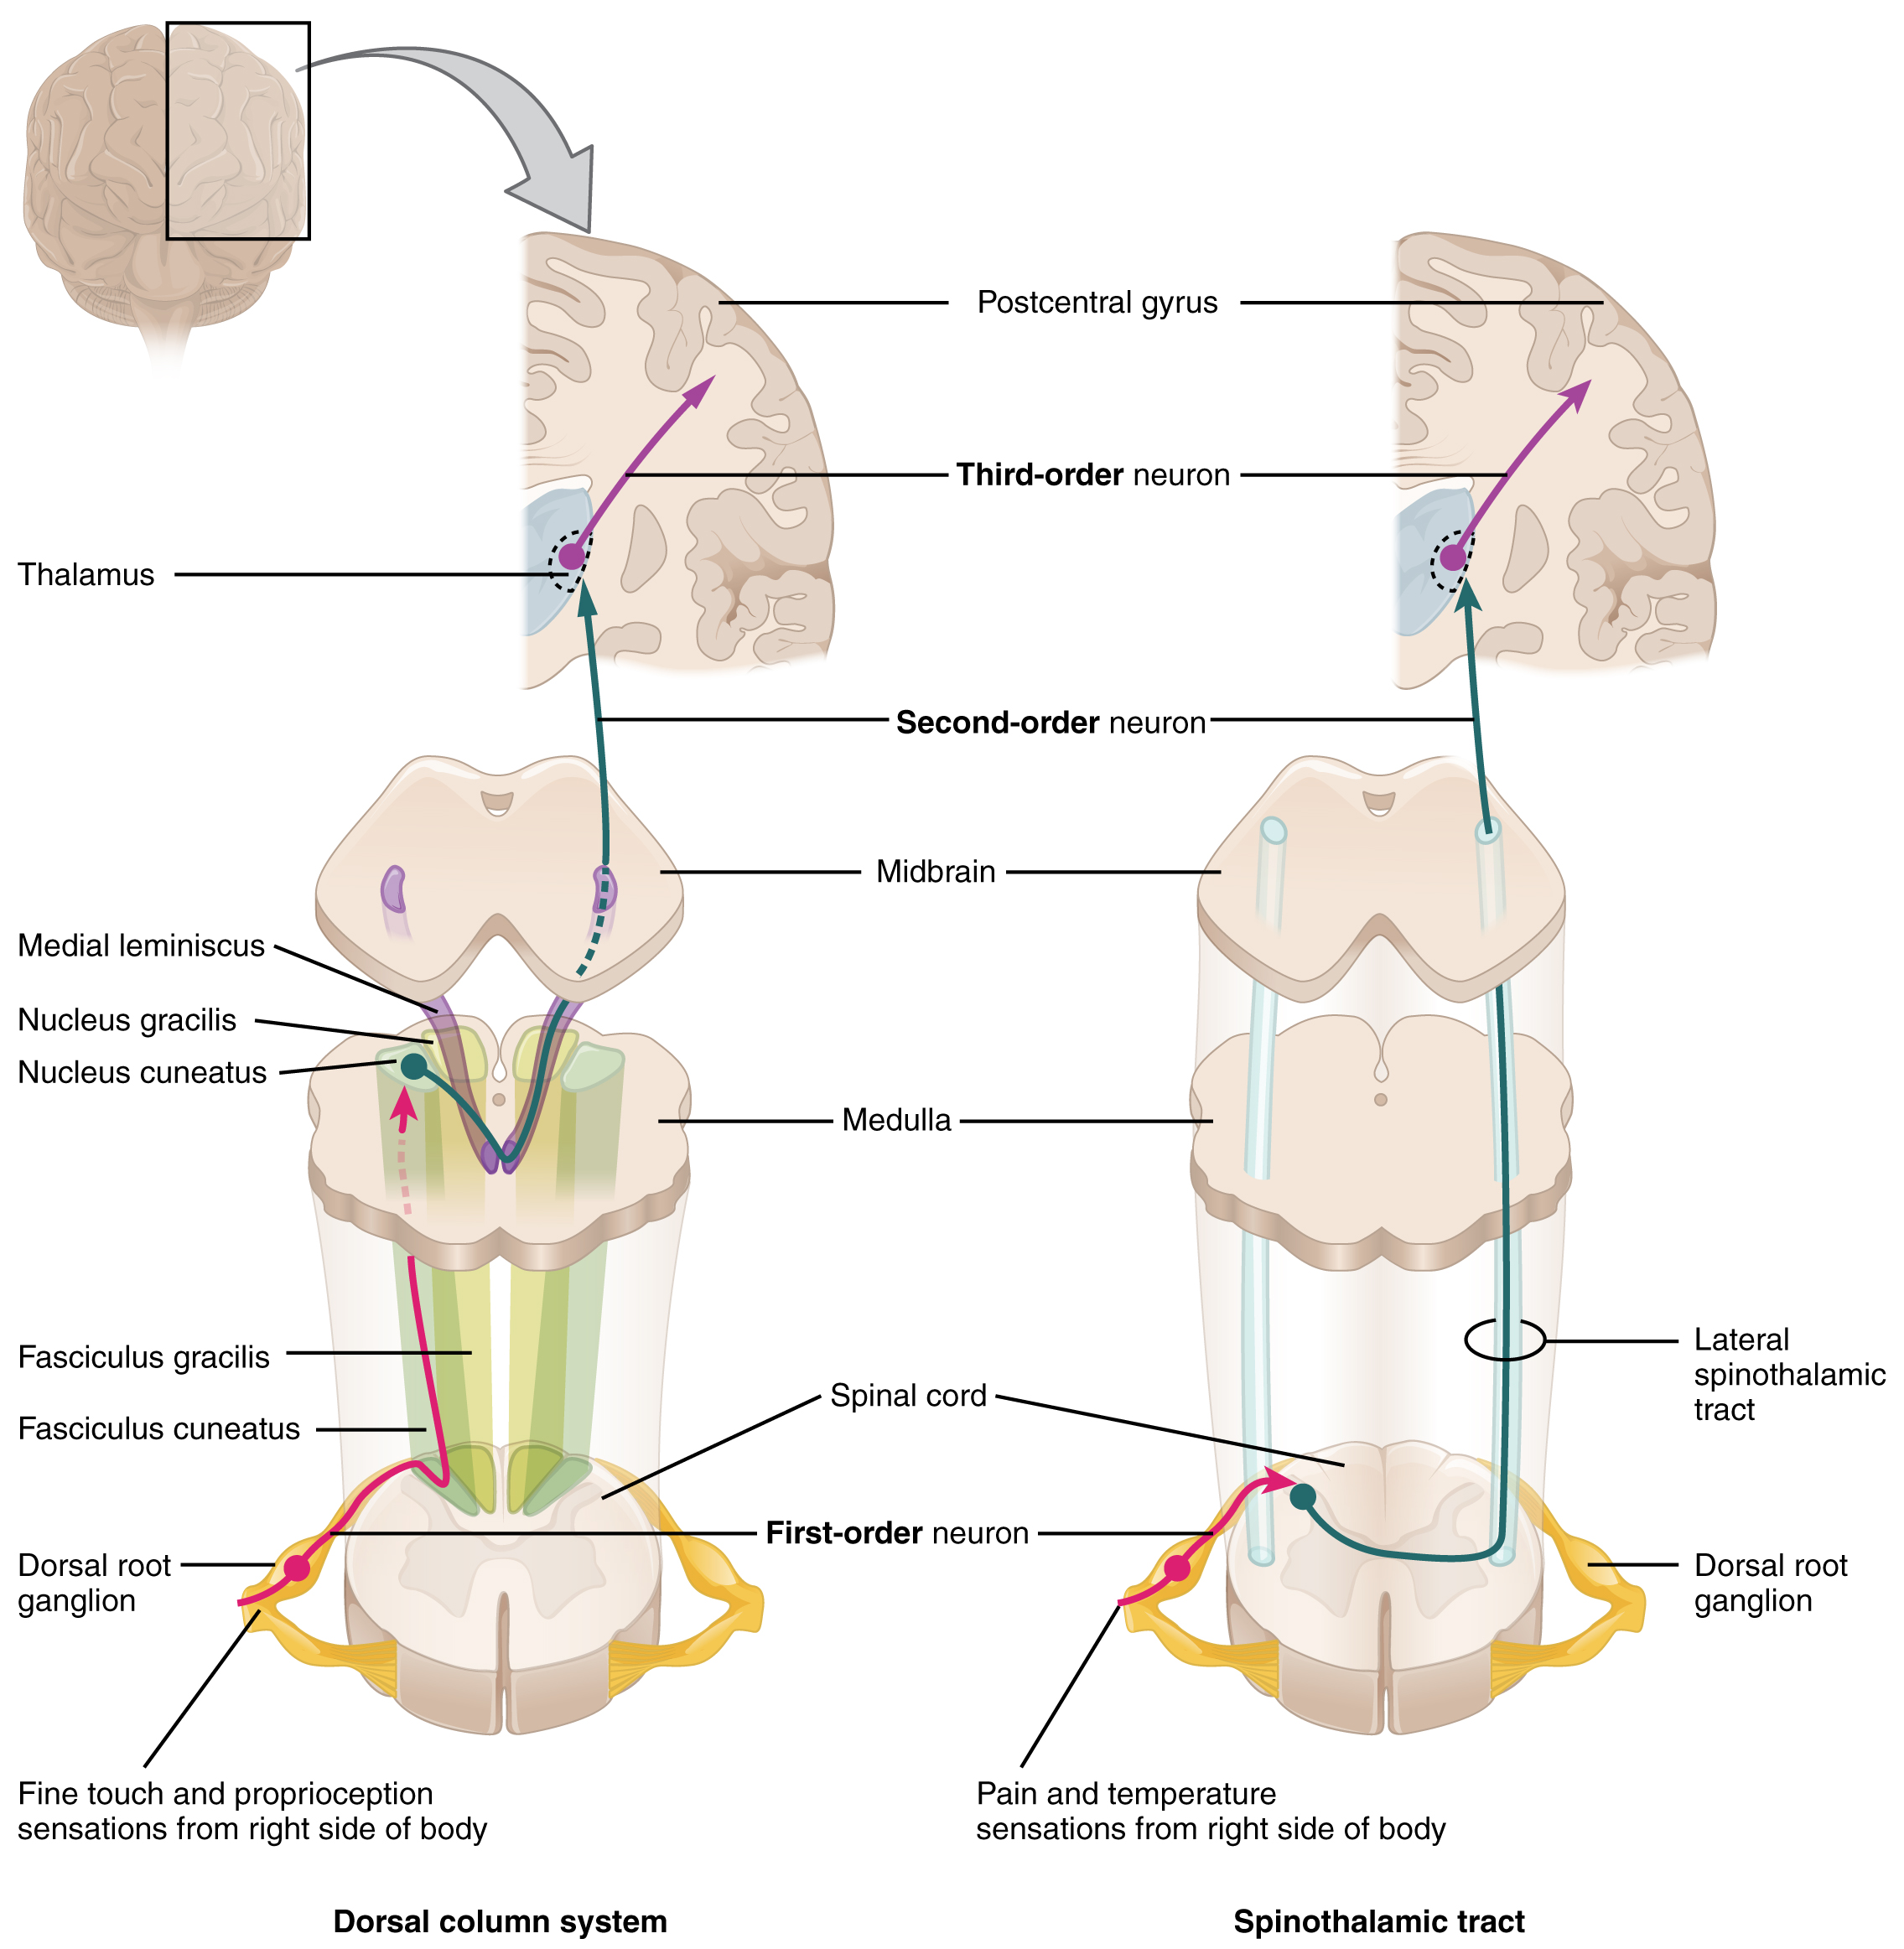 The left panel shows the dorsal column system and its connection to the brain. The right column shows the spinothalamic tract and its connection to the brain.